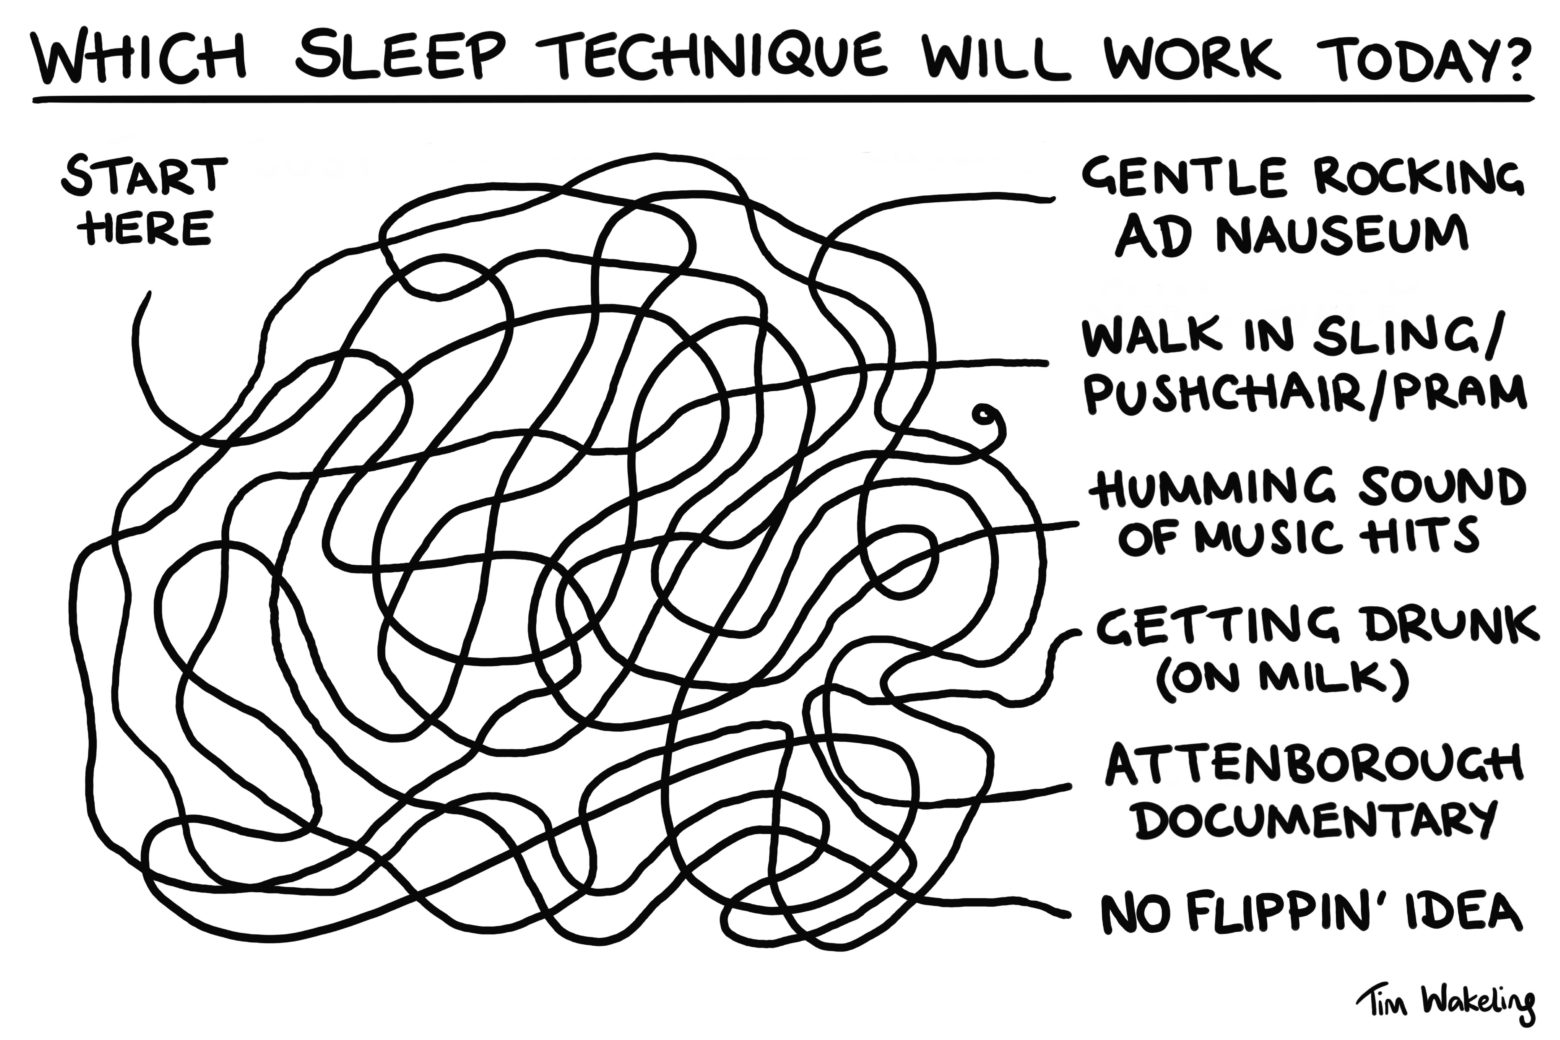 Sleep techniques